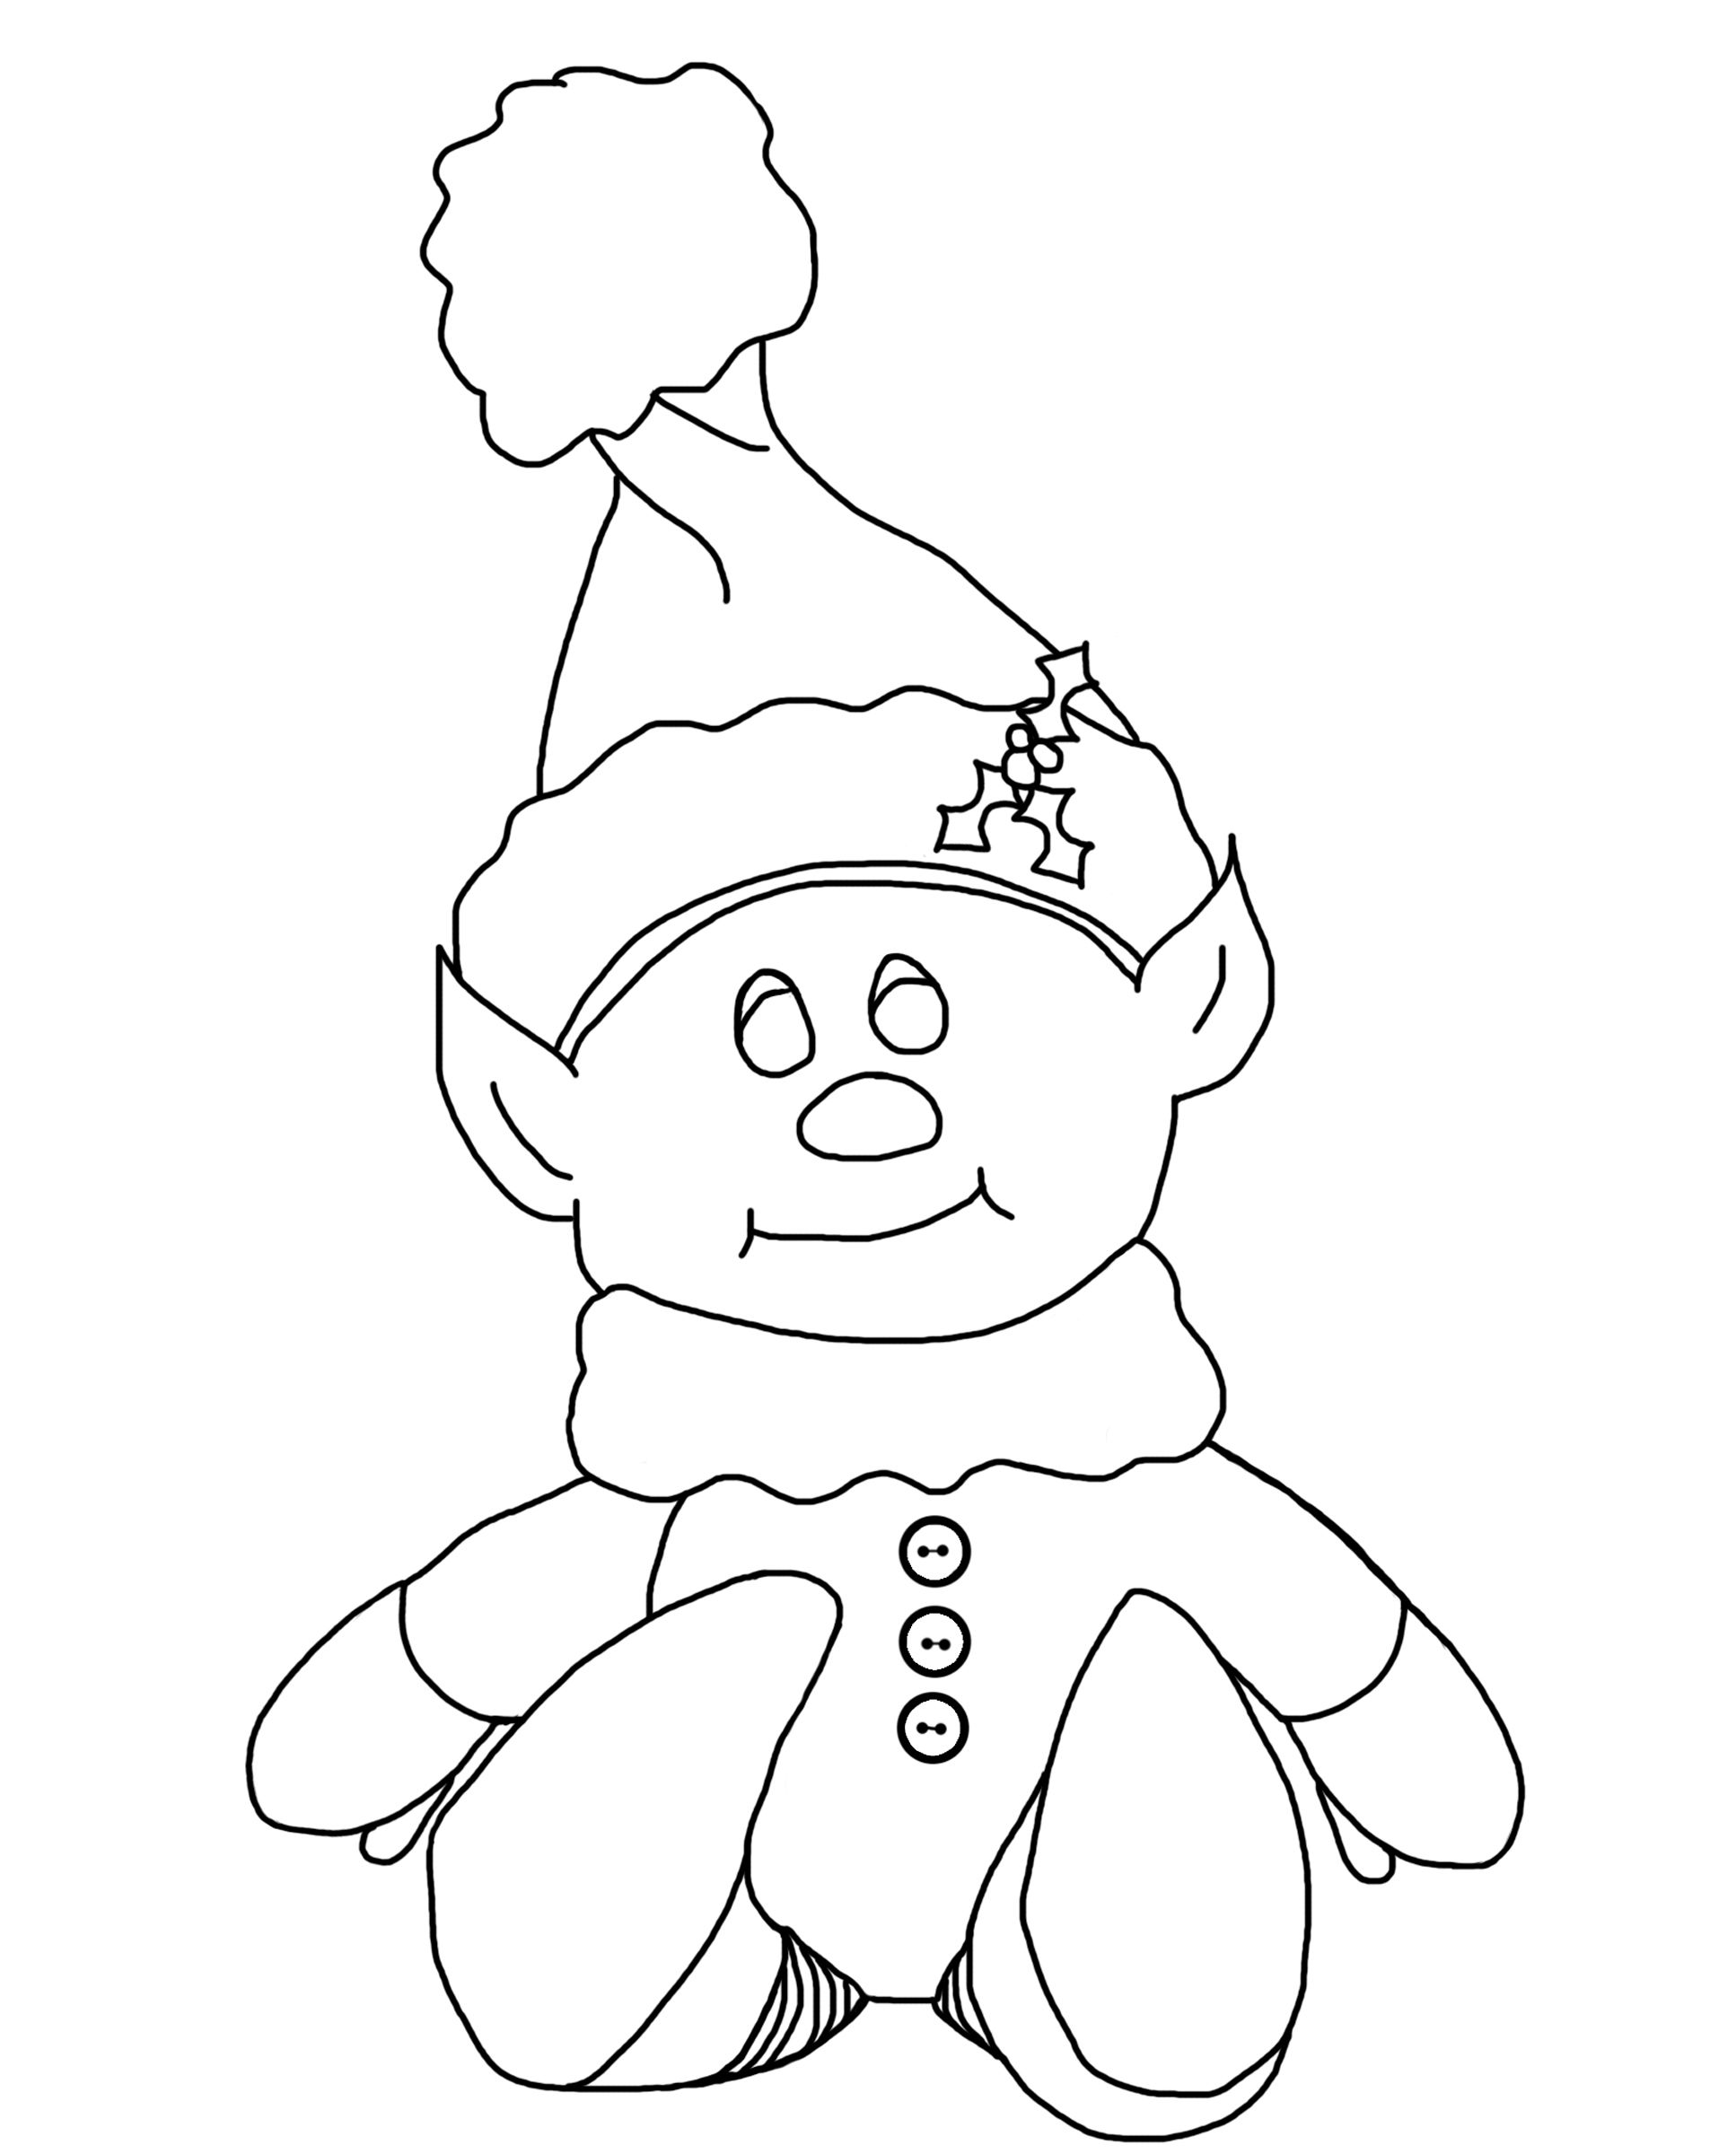 Printable christmas elf coloring pages - Creepy Little Elf Coloring Page